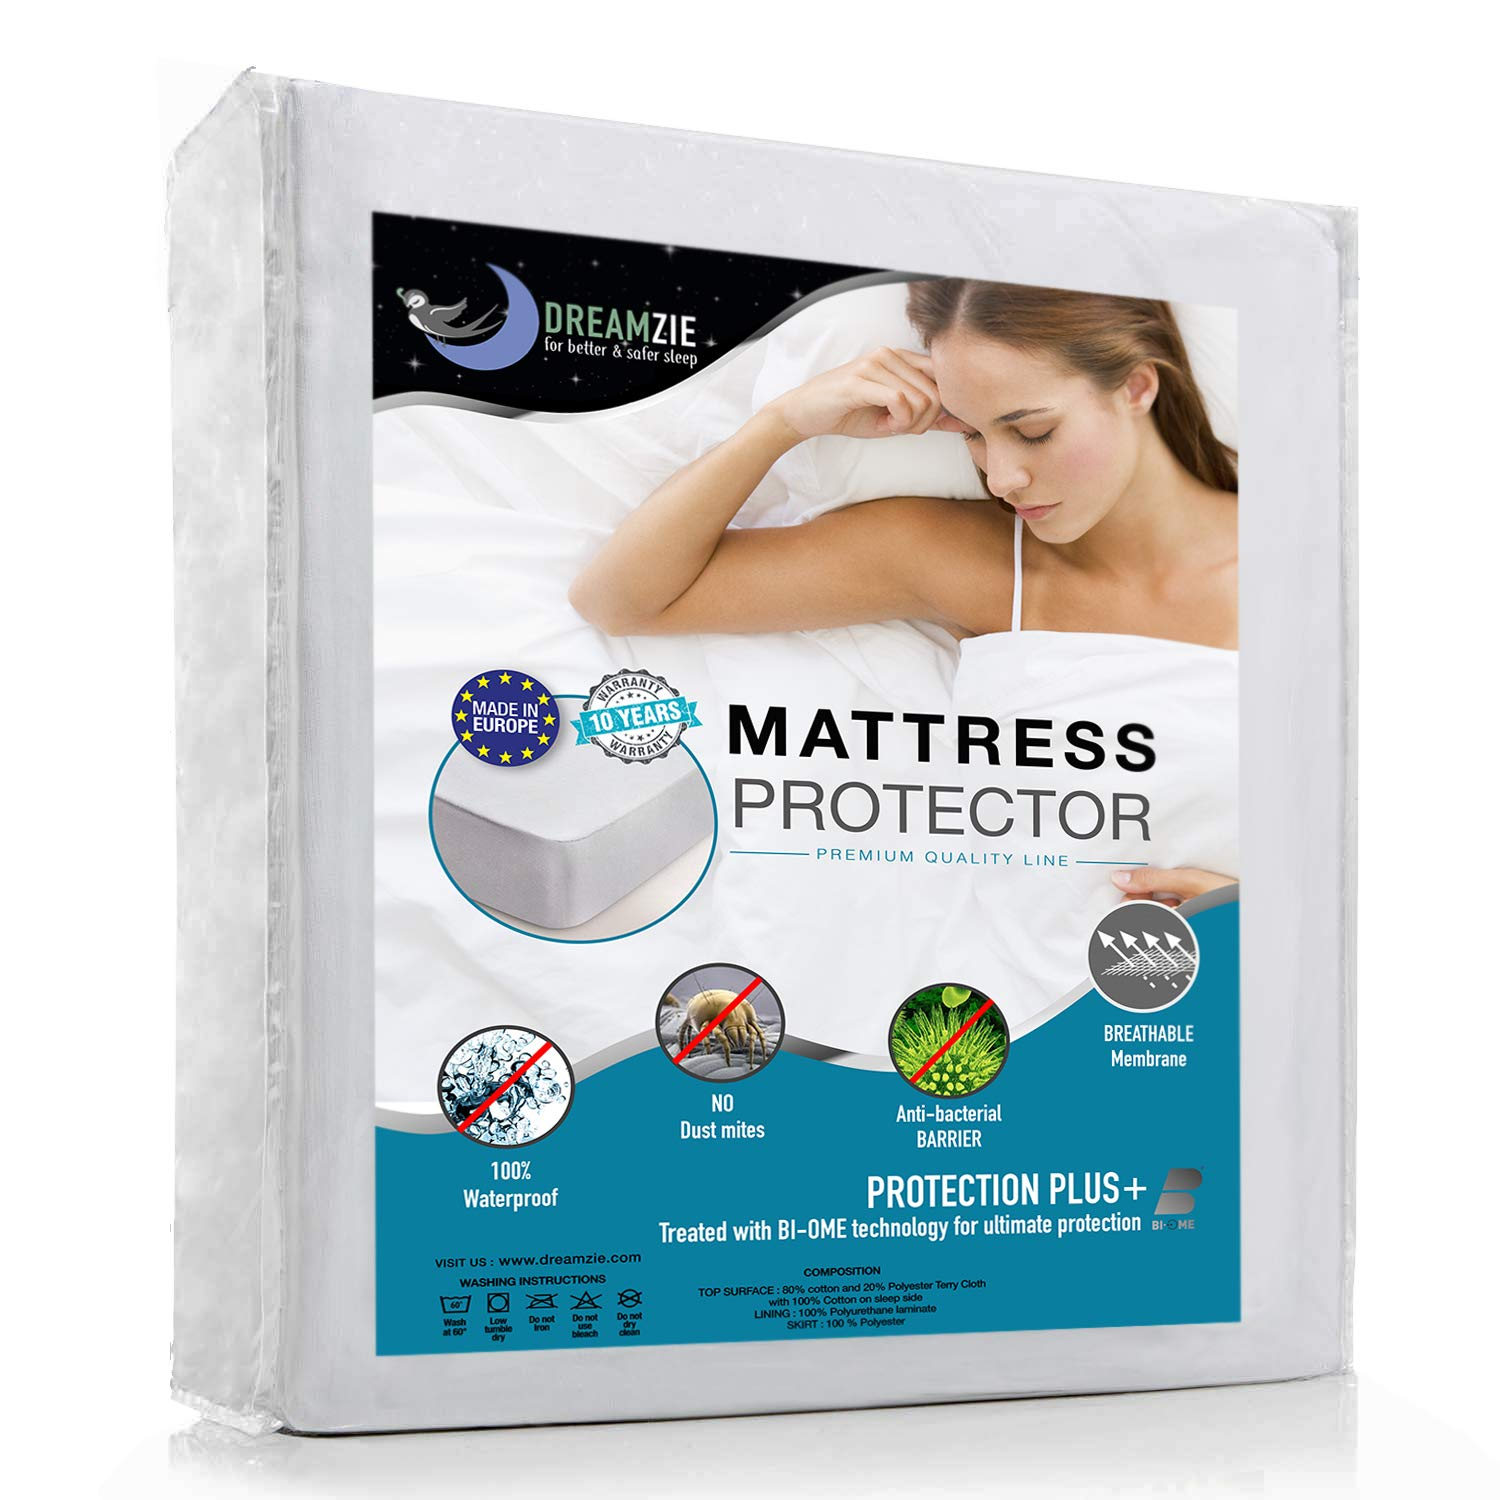 Dreamzie Waterproof Mattress Protector Breathable, Hypoallergenic, Anti-Mite, Anti-Bacterial, Anti-Mold Fitted Topper for Double Bed - New Bi-Ome Treatment - 10 Year Warranty (Toddler (60 x 120 cm)) BMS International